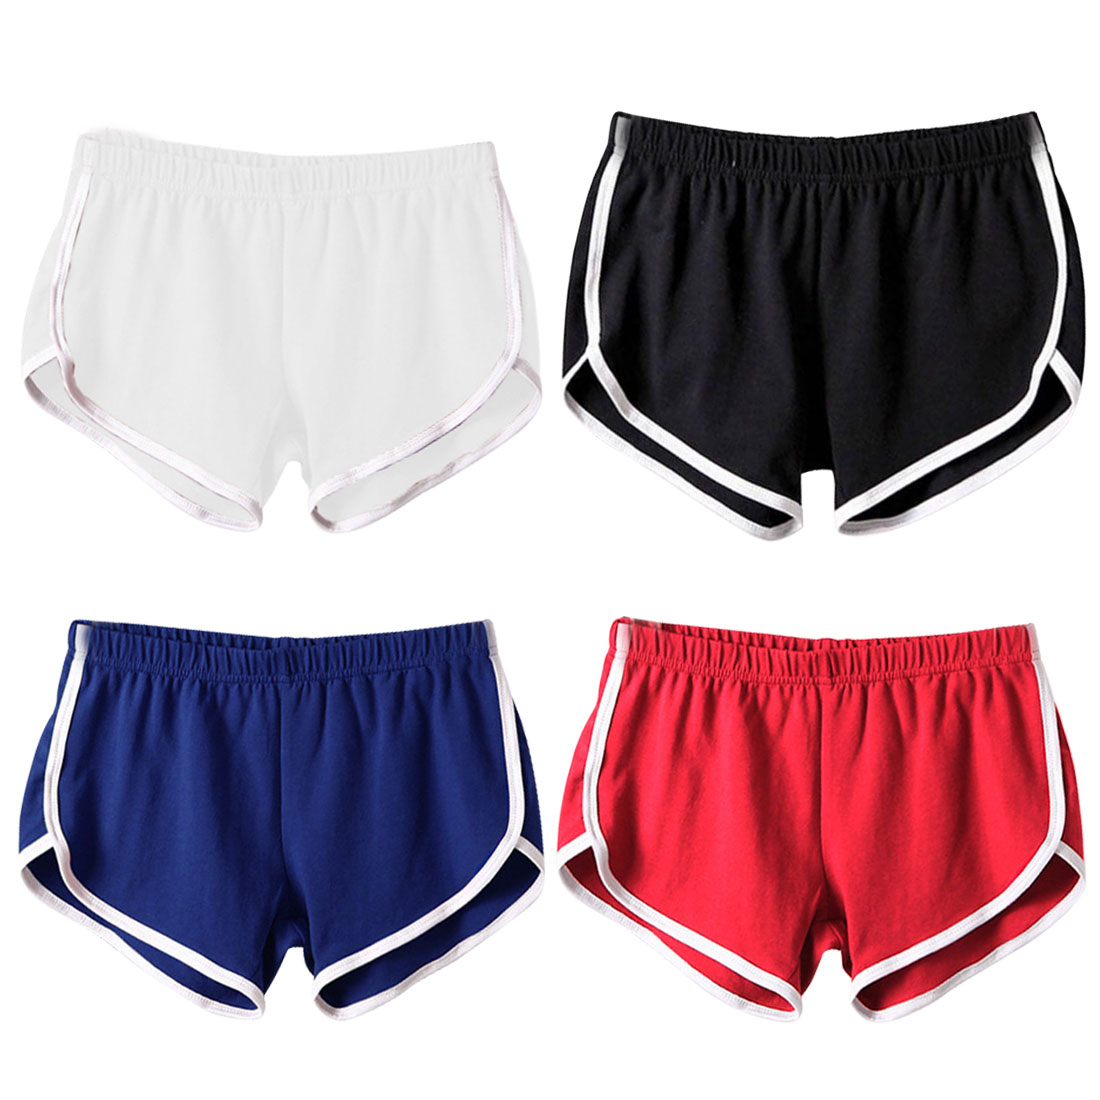 Women's Fashion Sports Running Sports And Leisure Fitness Stretch Shorts